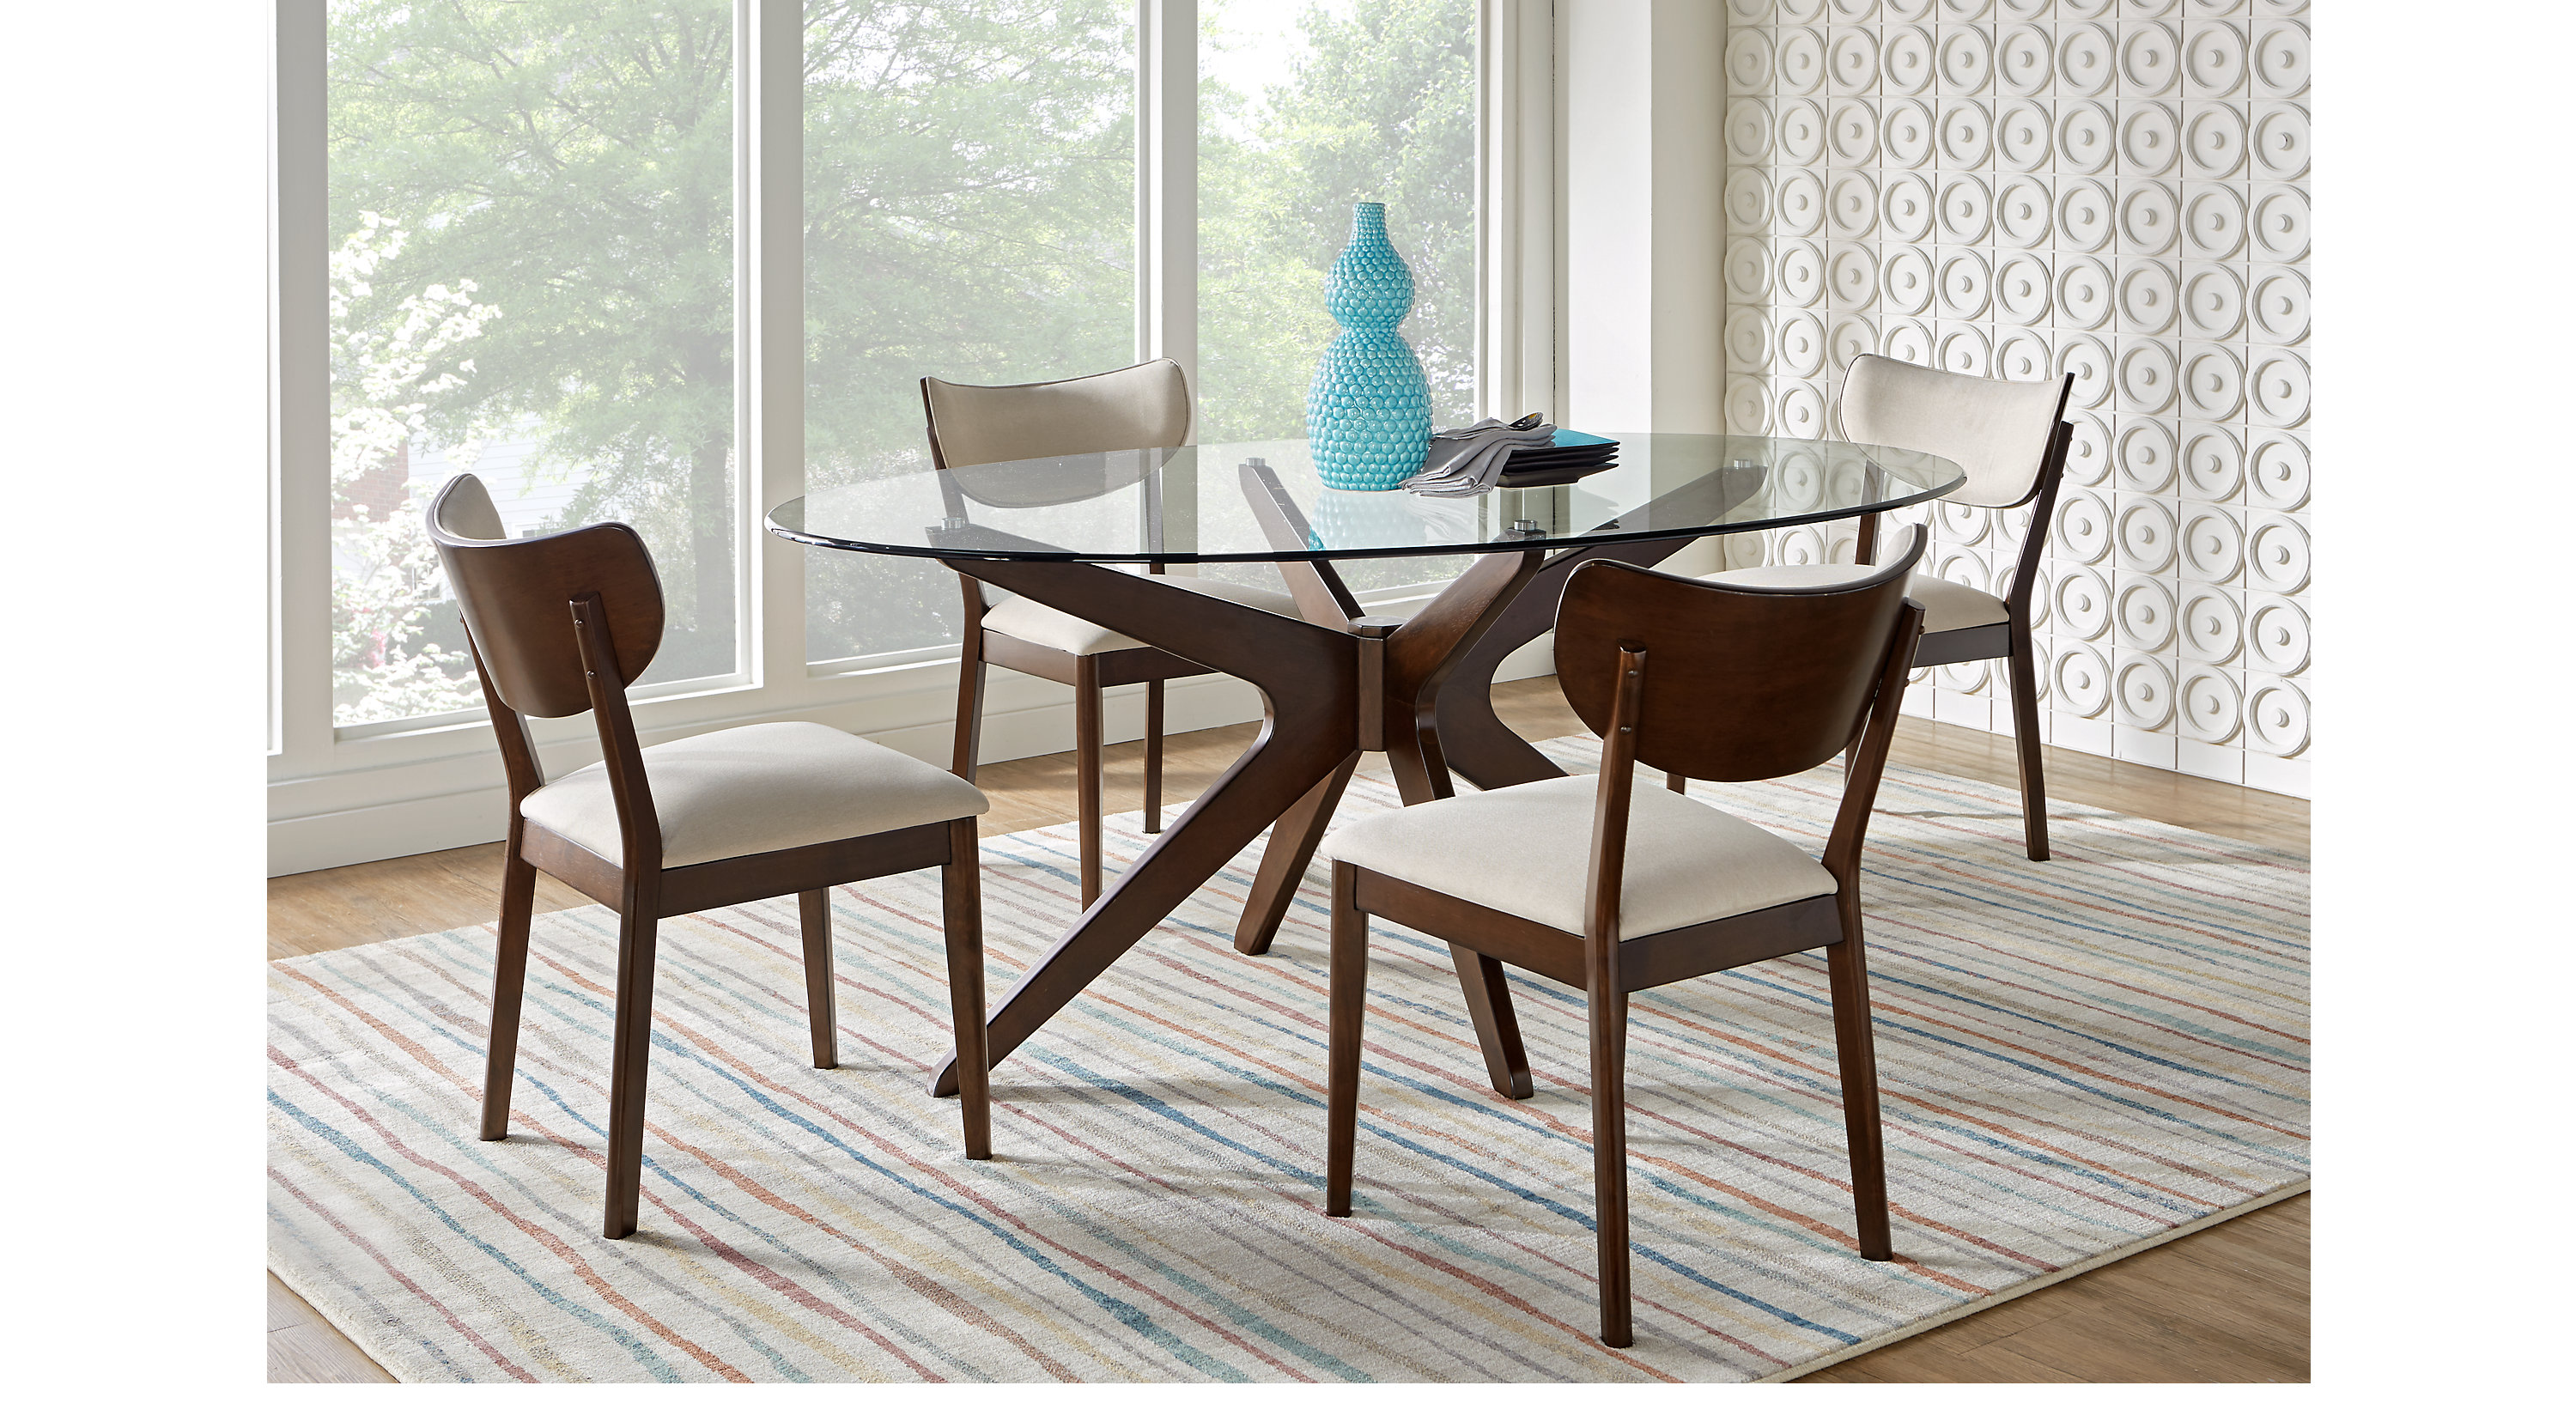 Delmon Walnut dark brown 5 Pc Oval Dining Set Contemporary